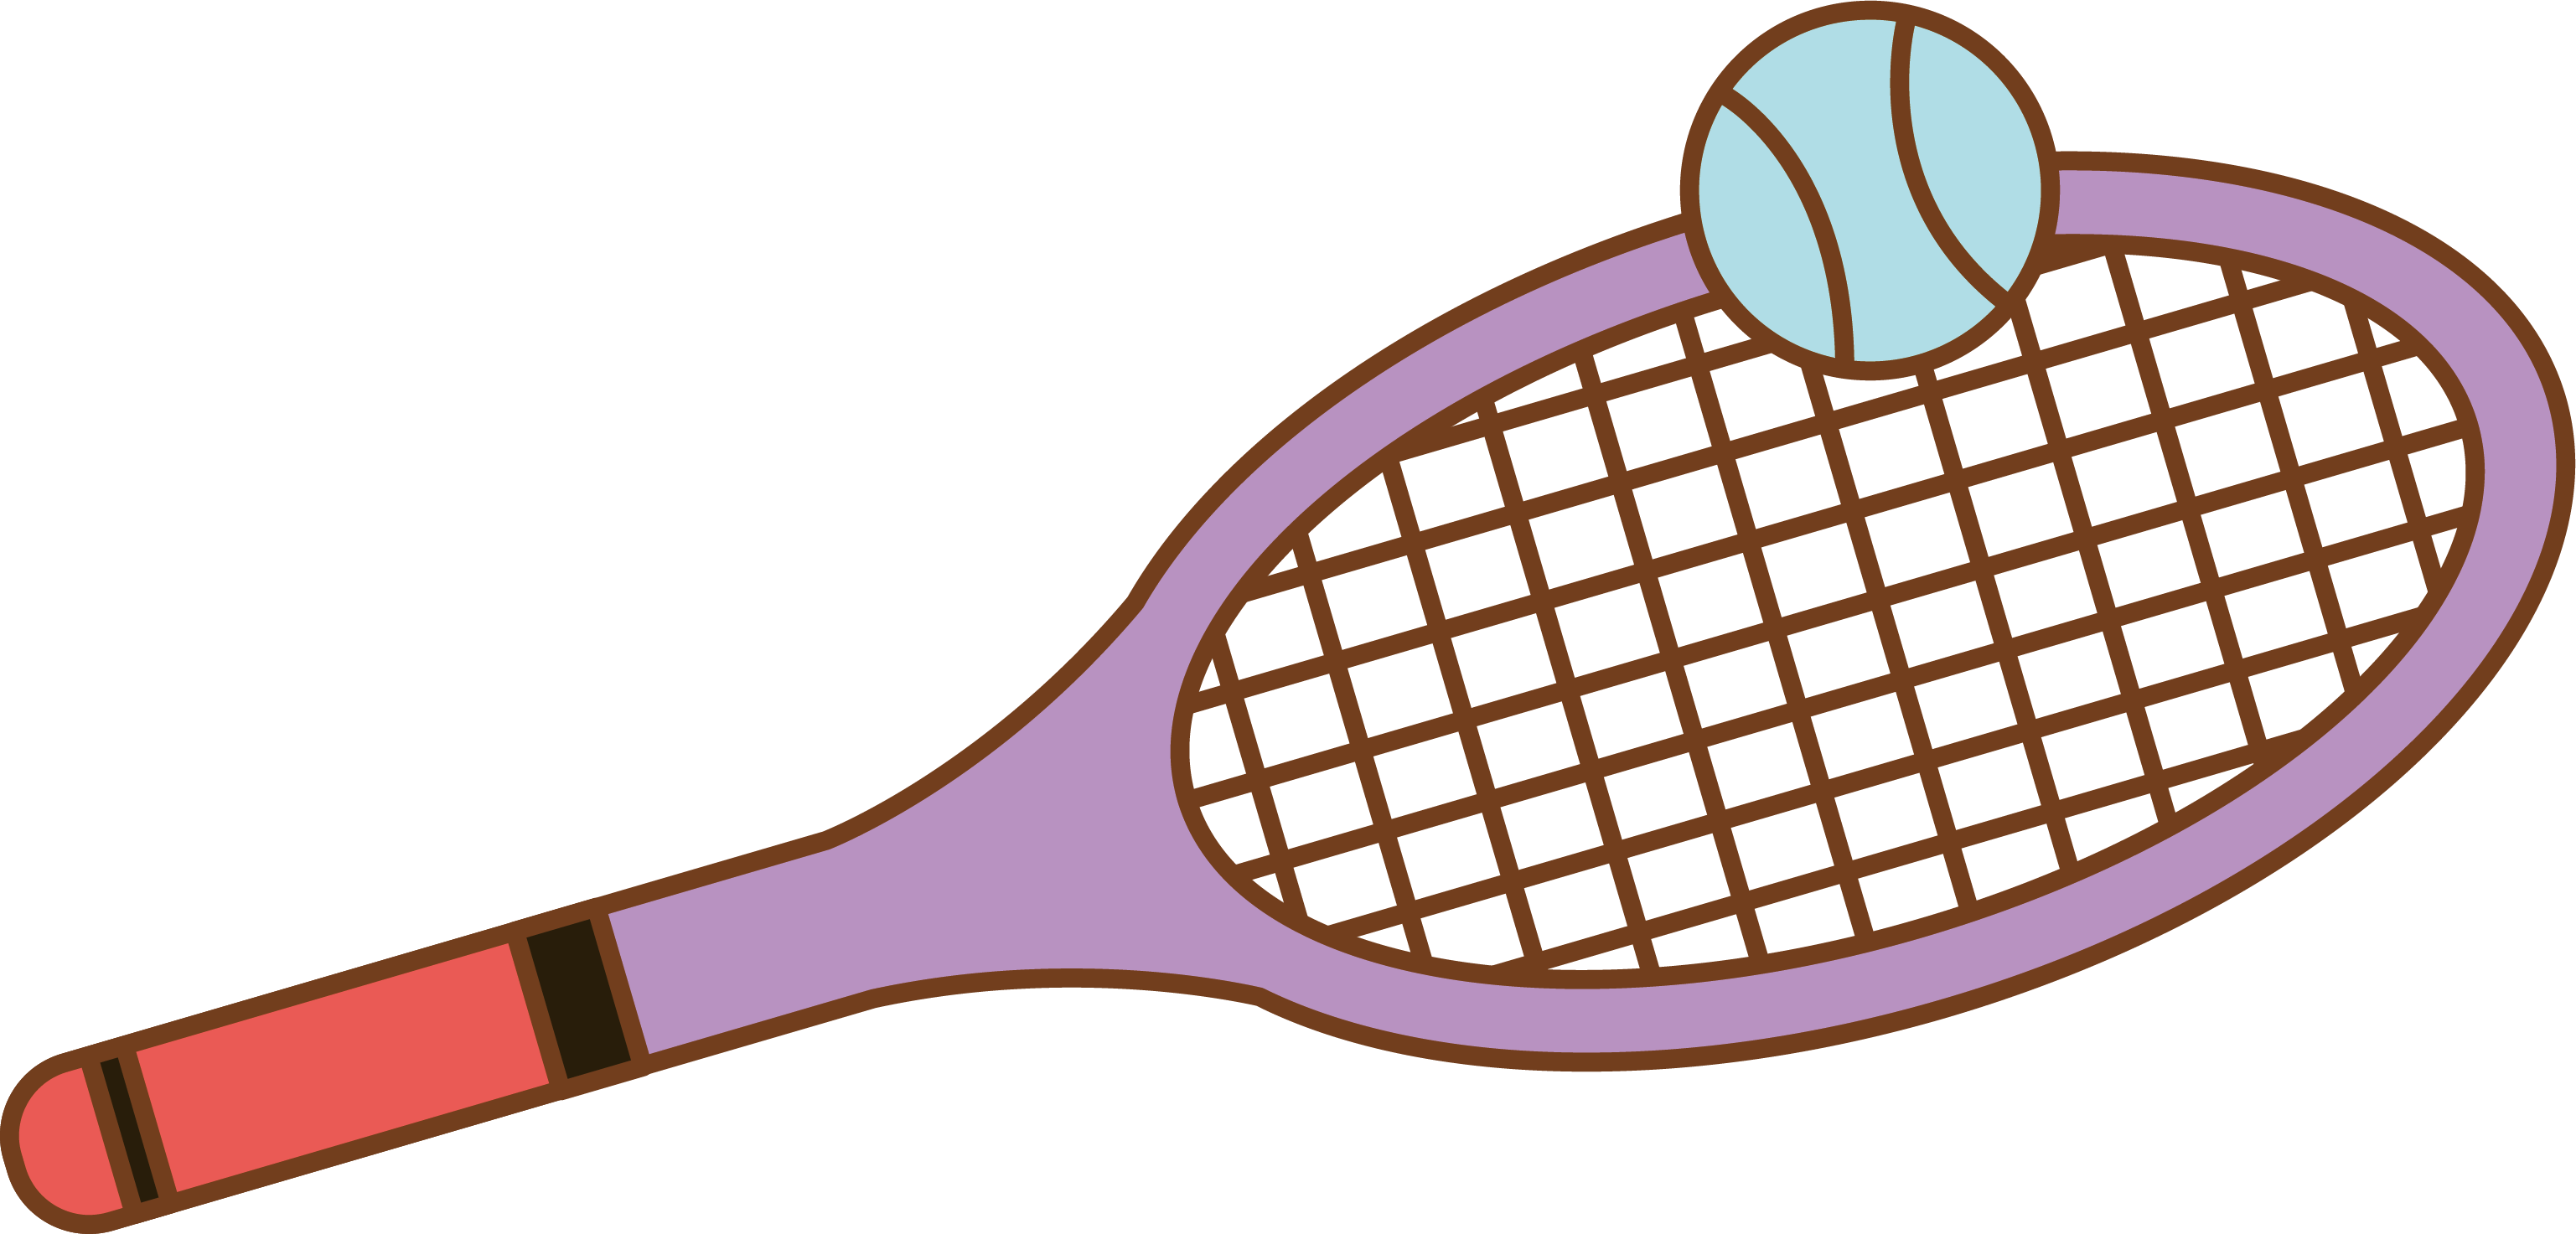 3074x1473 Cliparts For Free Download Tennis Clipart Sketch And Use